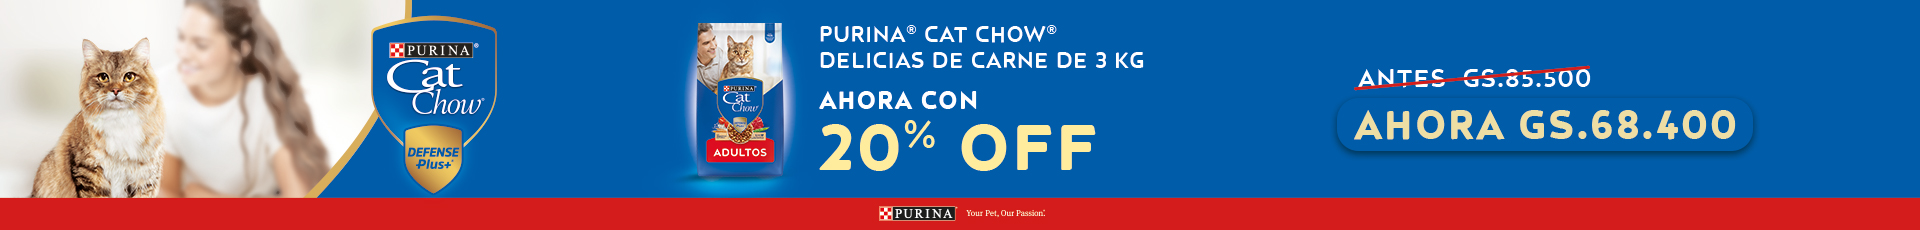 productos?q=7613034874979&post_type=product?utm_source=WEB&utm_medium=banner%20catalogo%20superior&utm_campaign=cat_chow